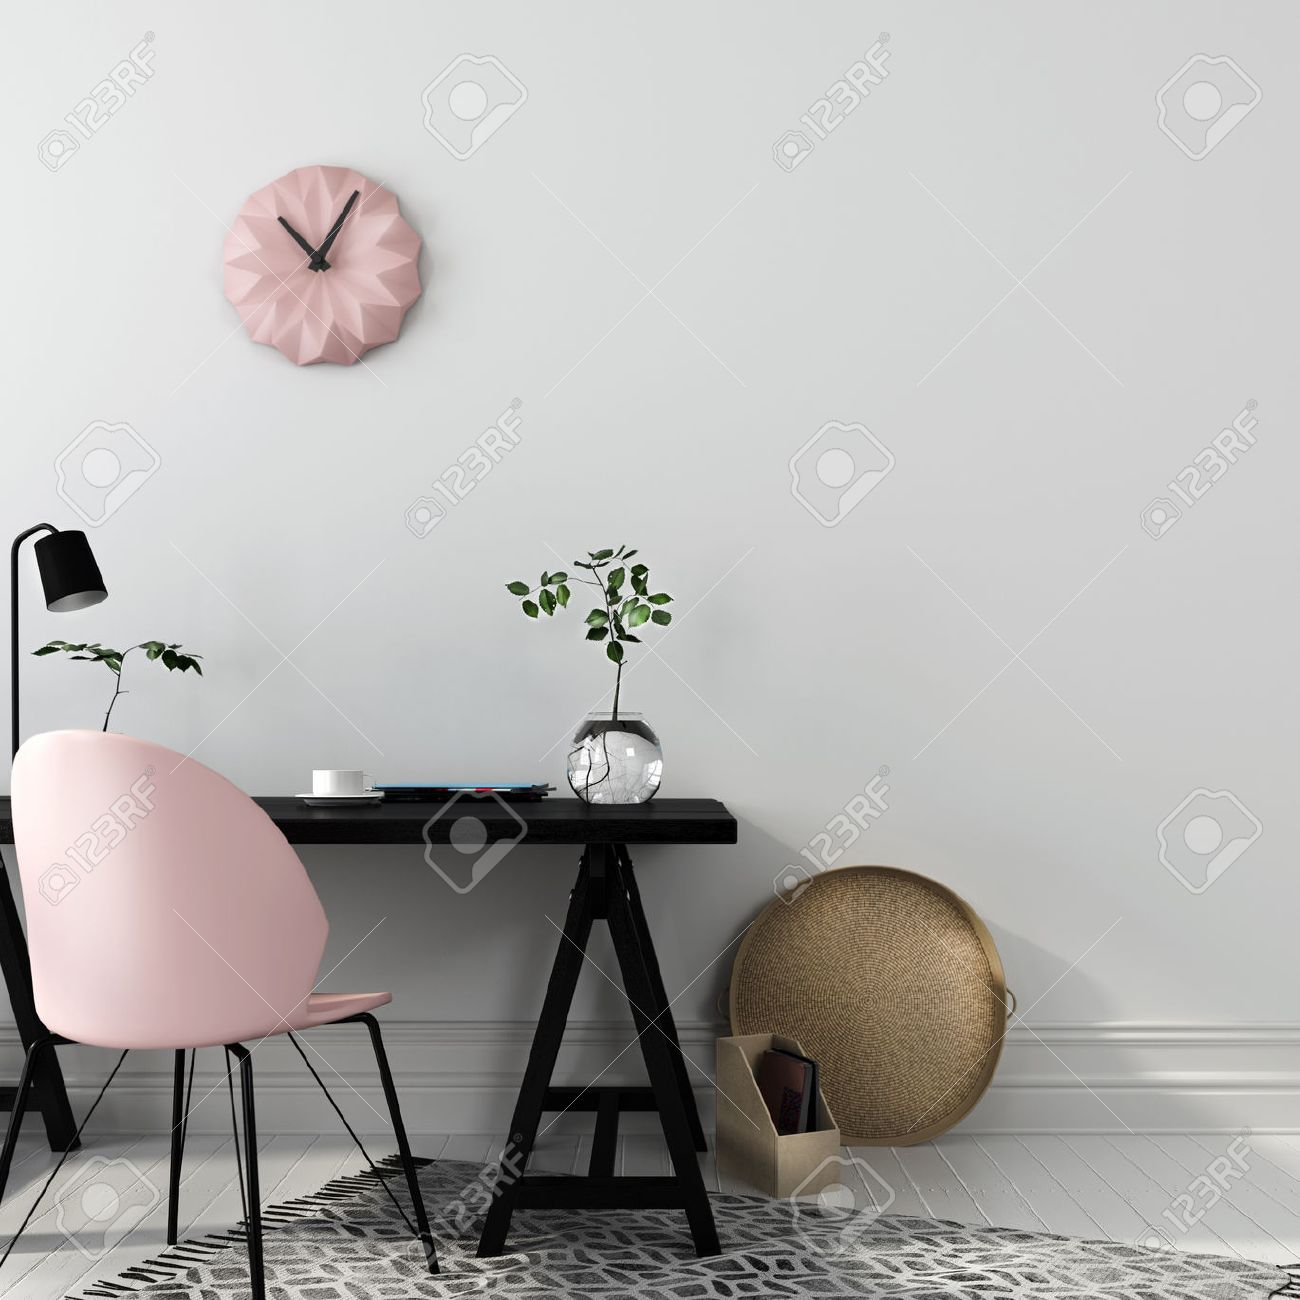 Stylish workplace with an interesting combination of a black wooden table and a pink chair - 56252395